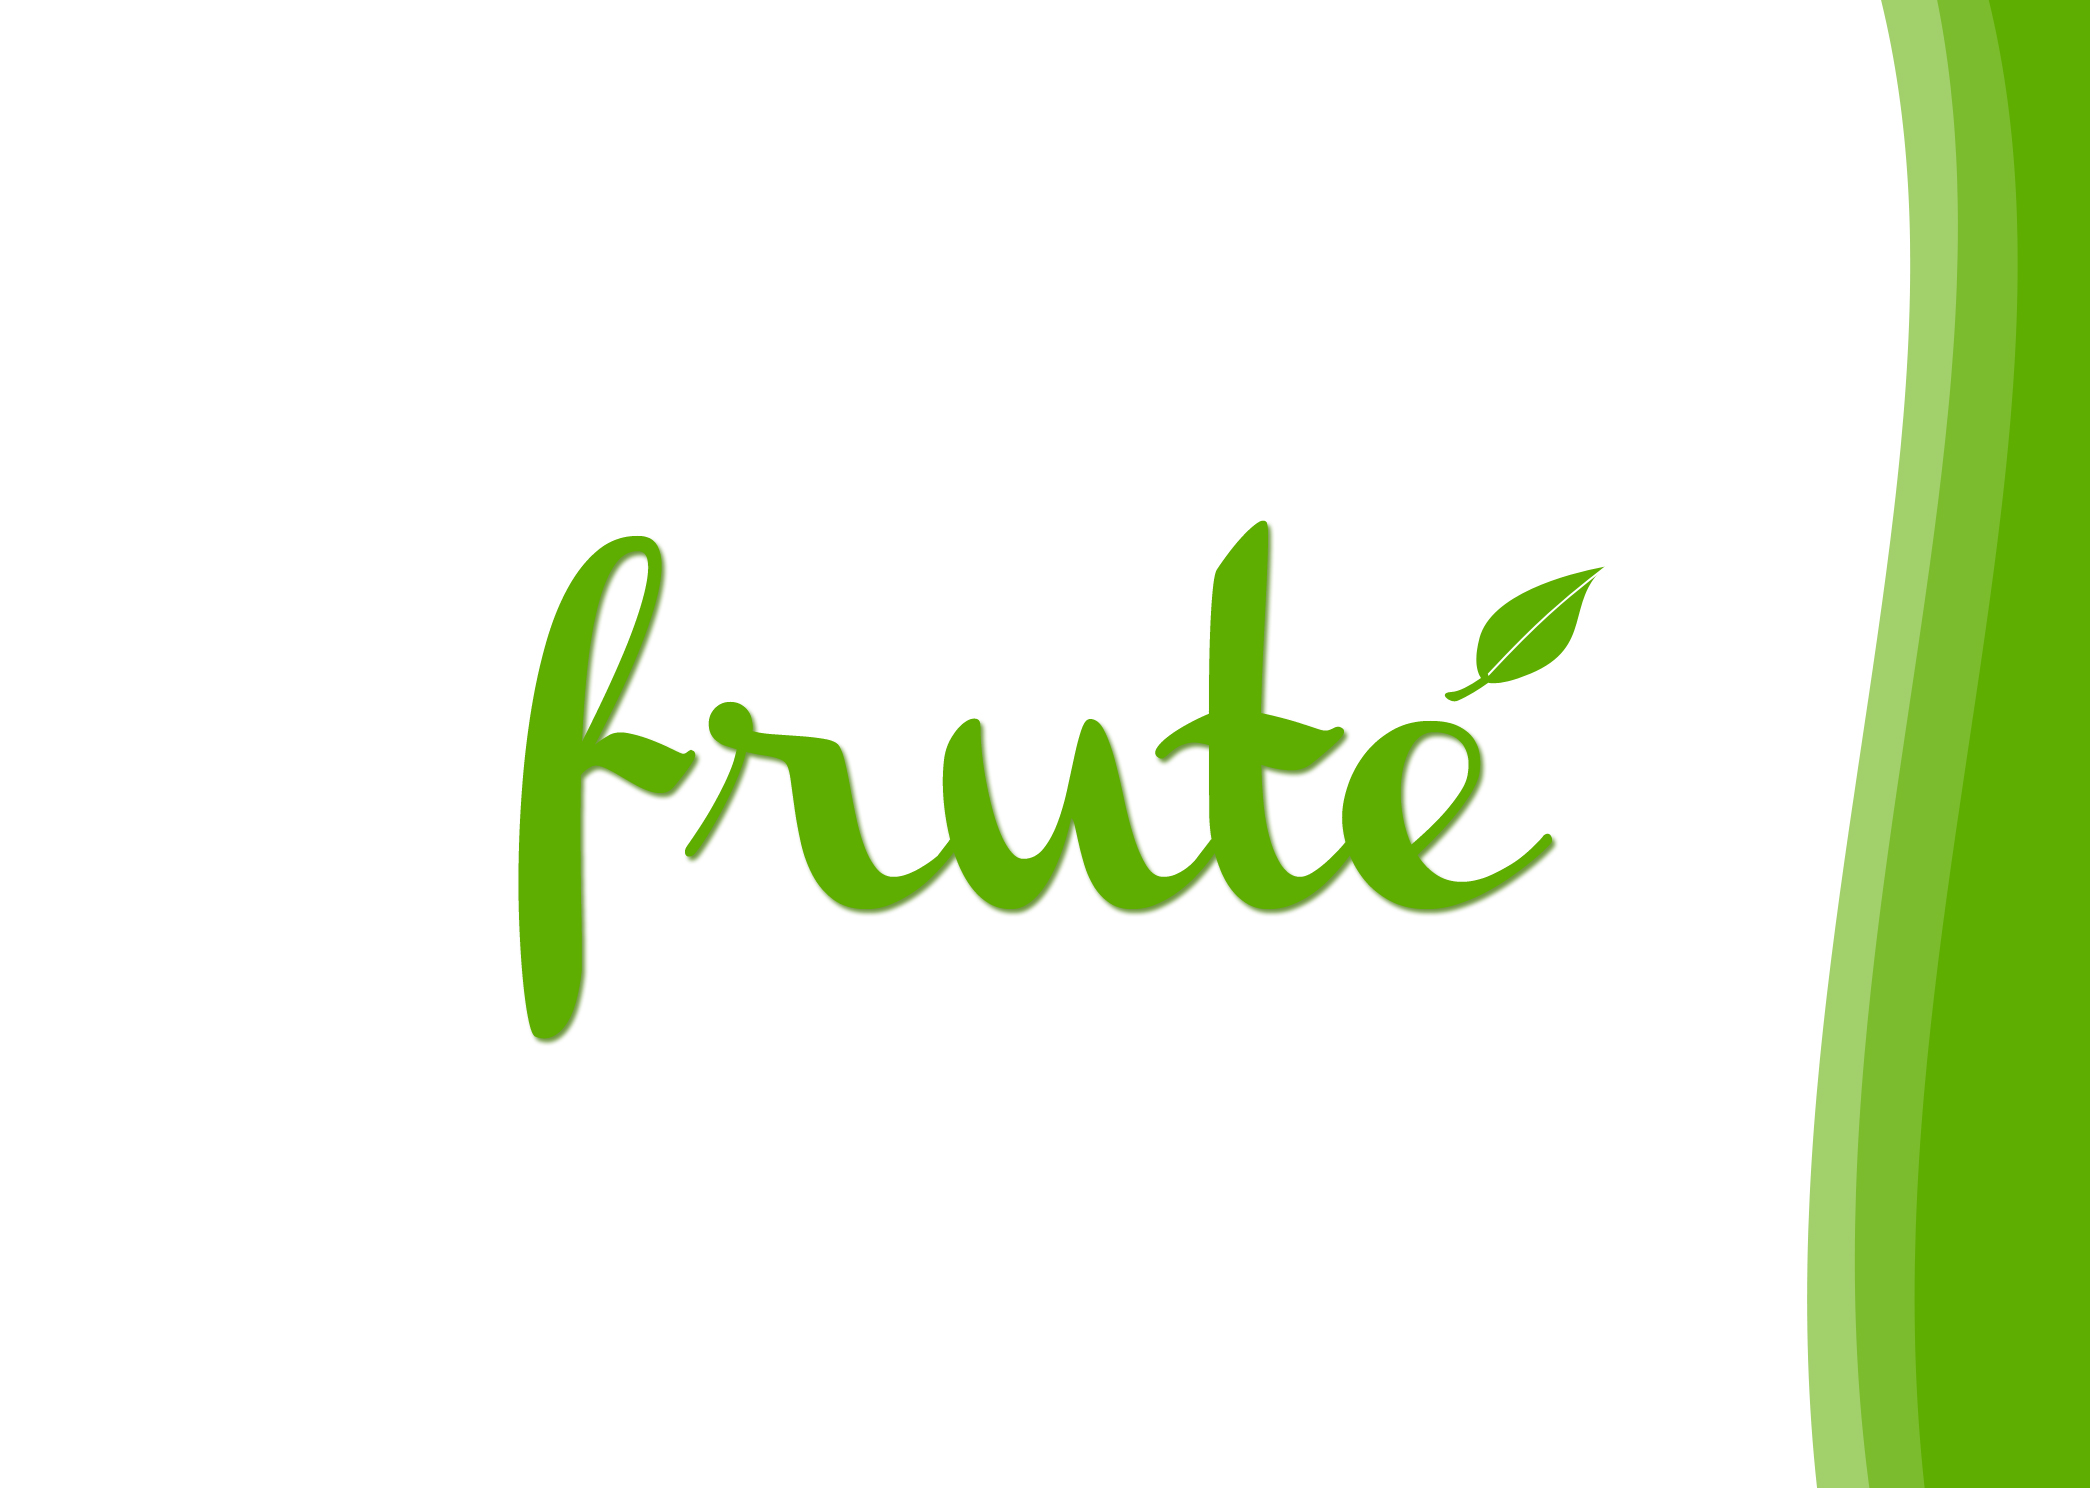 Logo Design by Lama Creative - Entry No. 3 in the Logo Design Contest Imaginative Logo Design for Fruté.